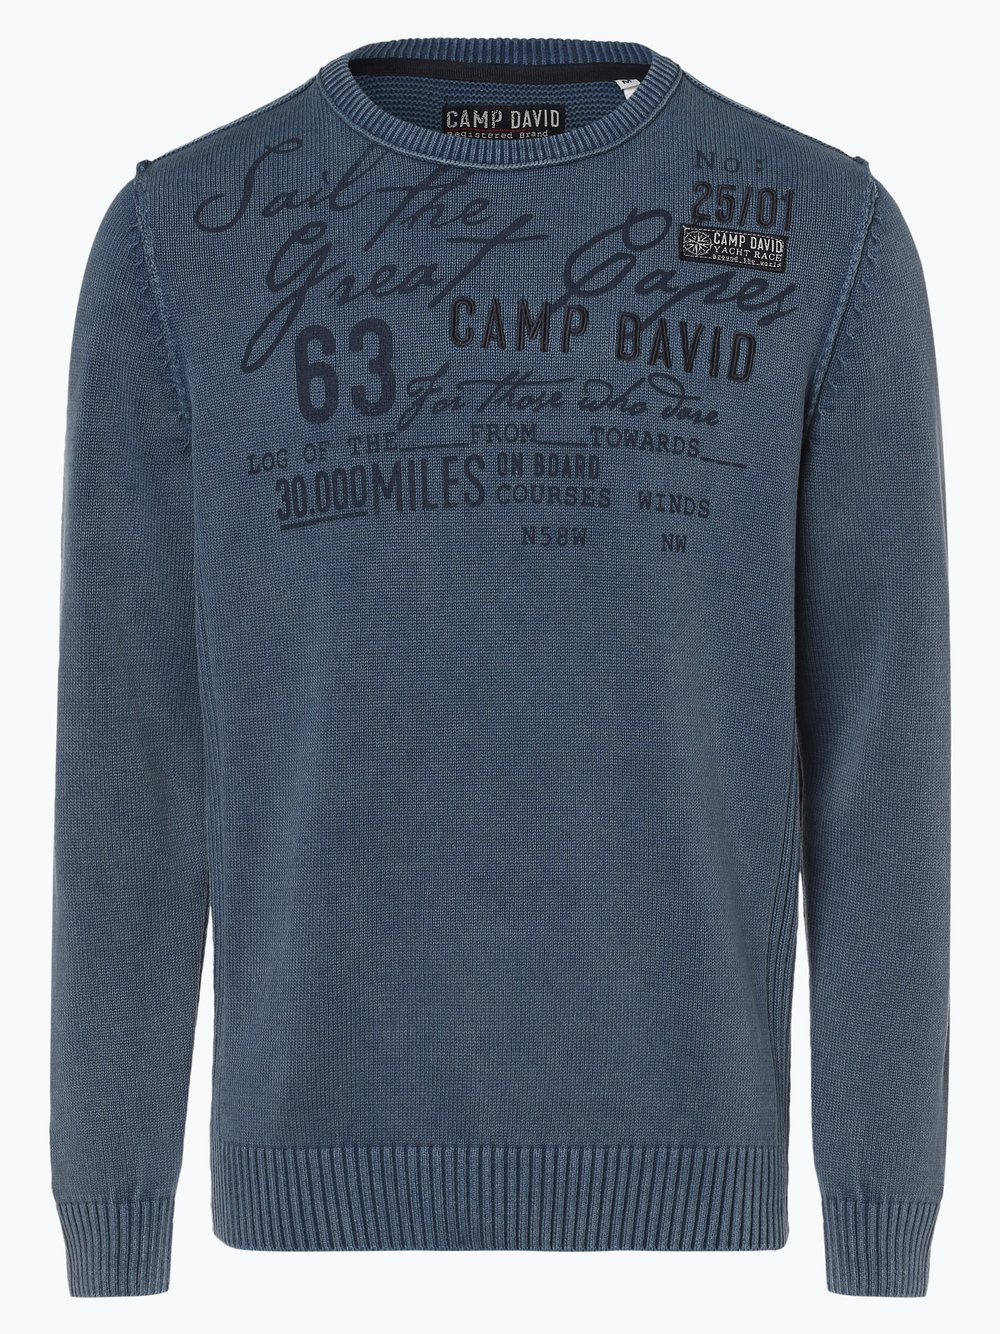 3d5076087ac65f camp-david-herren-pullover pdmain 407108-0001 bustfront 1.jpg